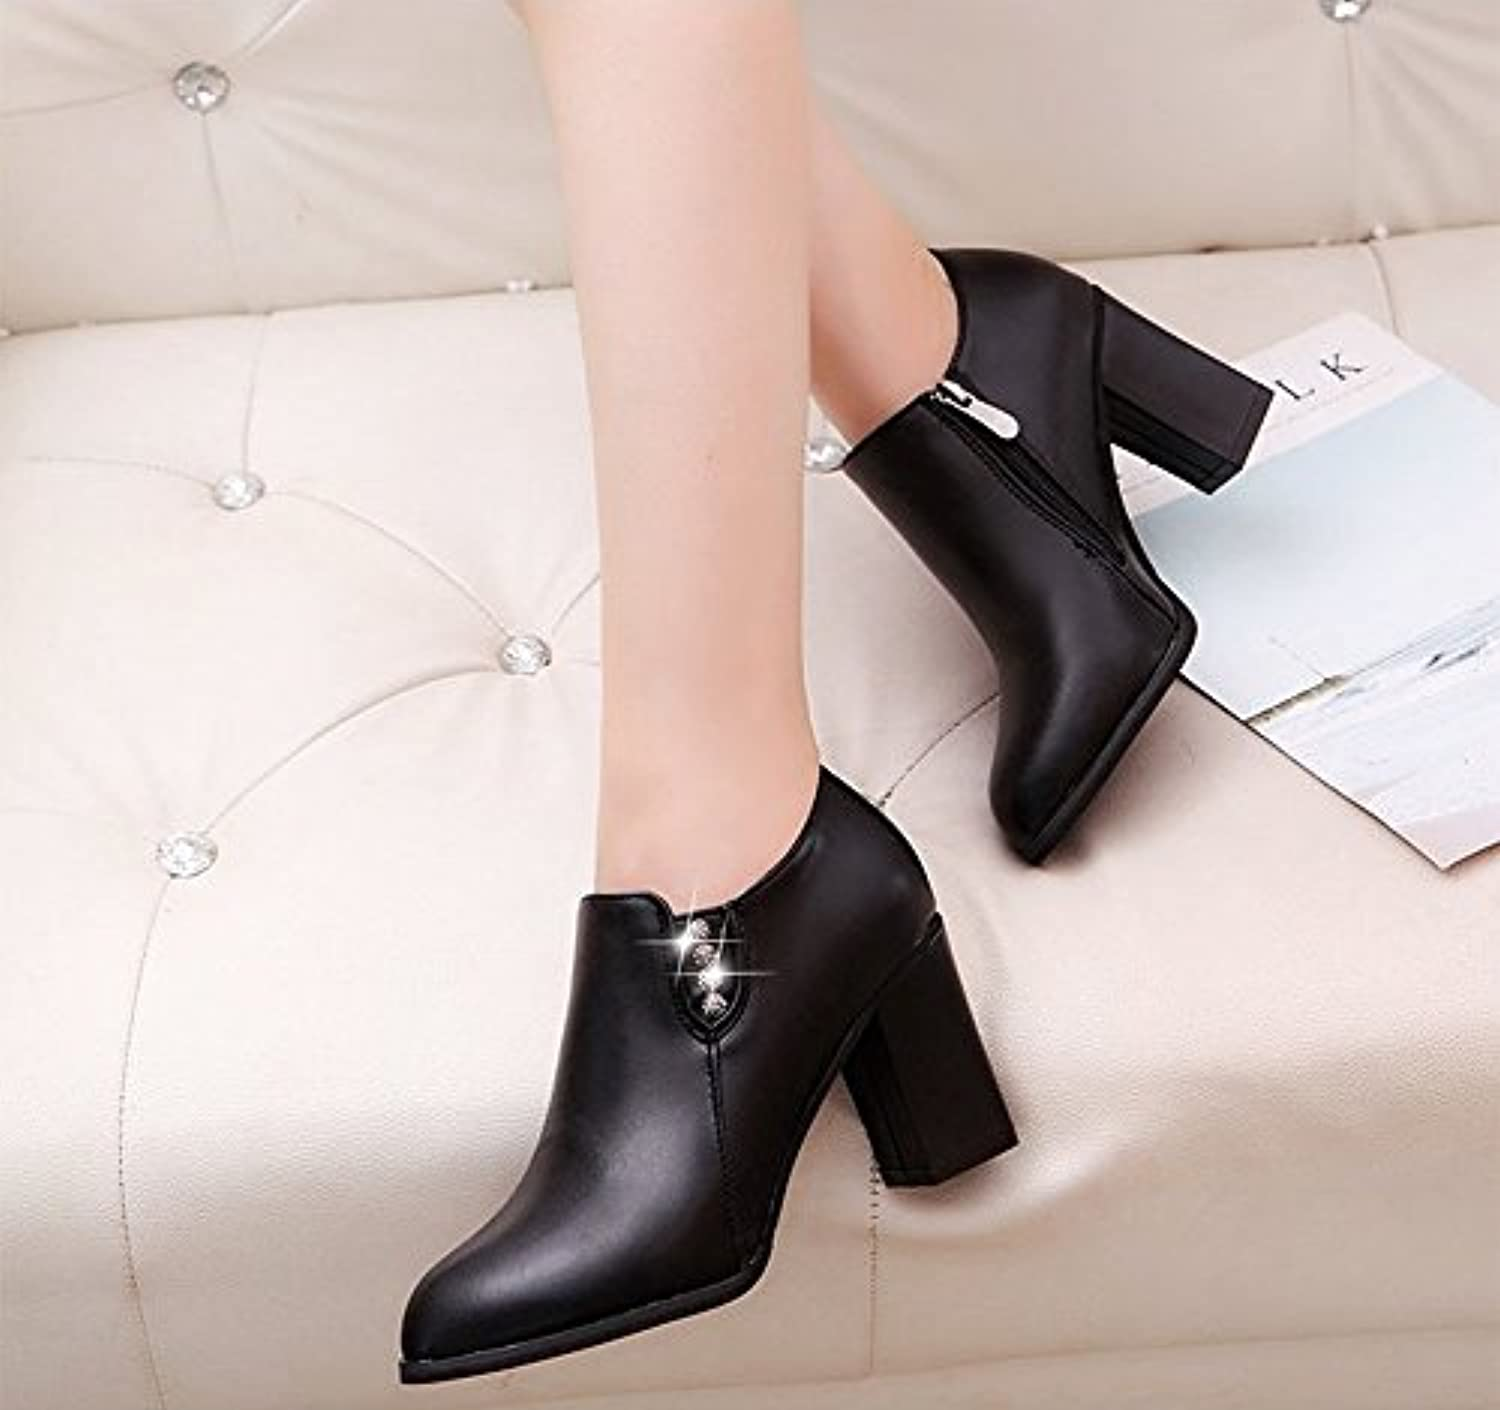 0c044ea61e2 in the rough rough rough with the Women s Boots Fashion Diamond Boots  Martin Boots